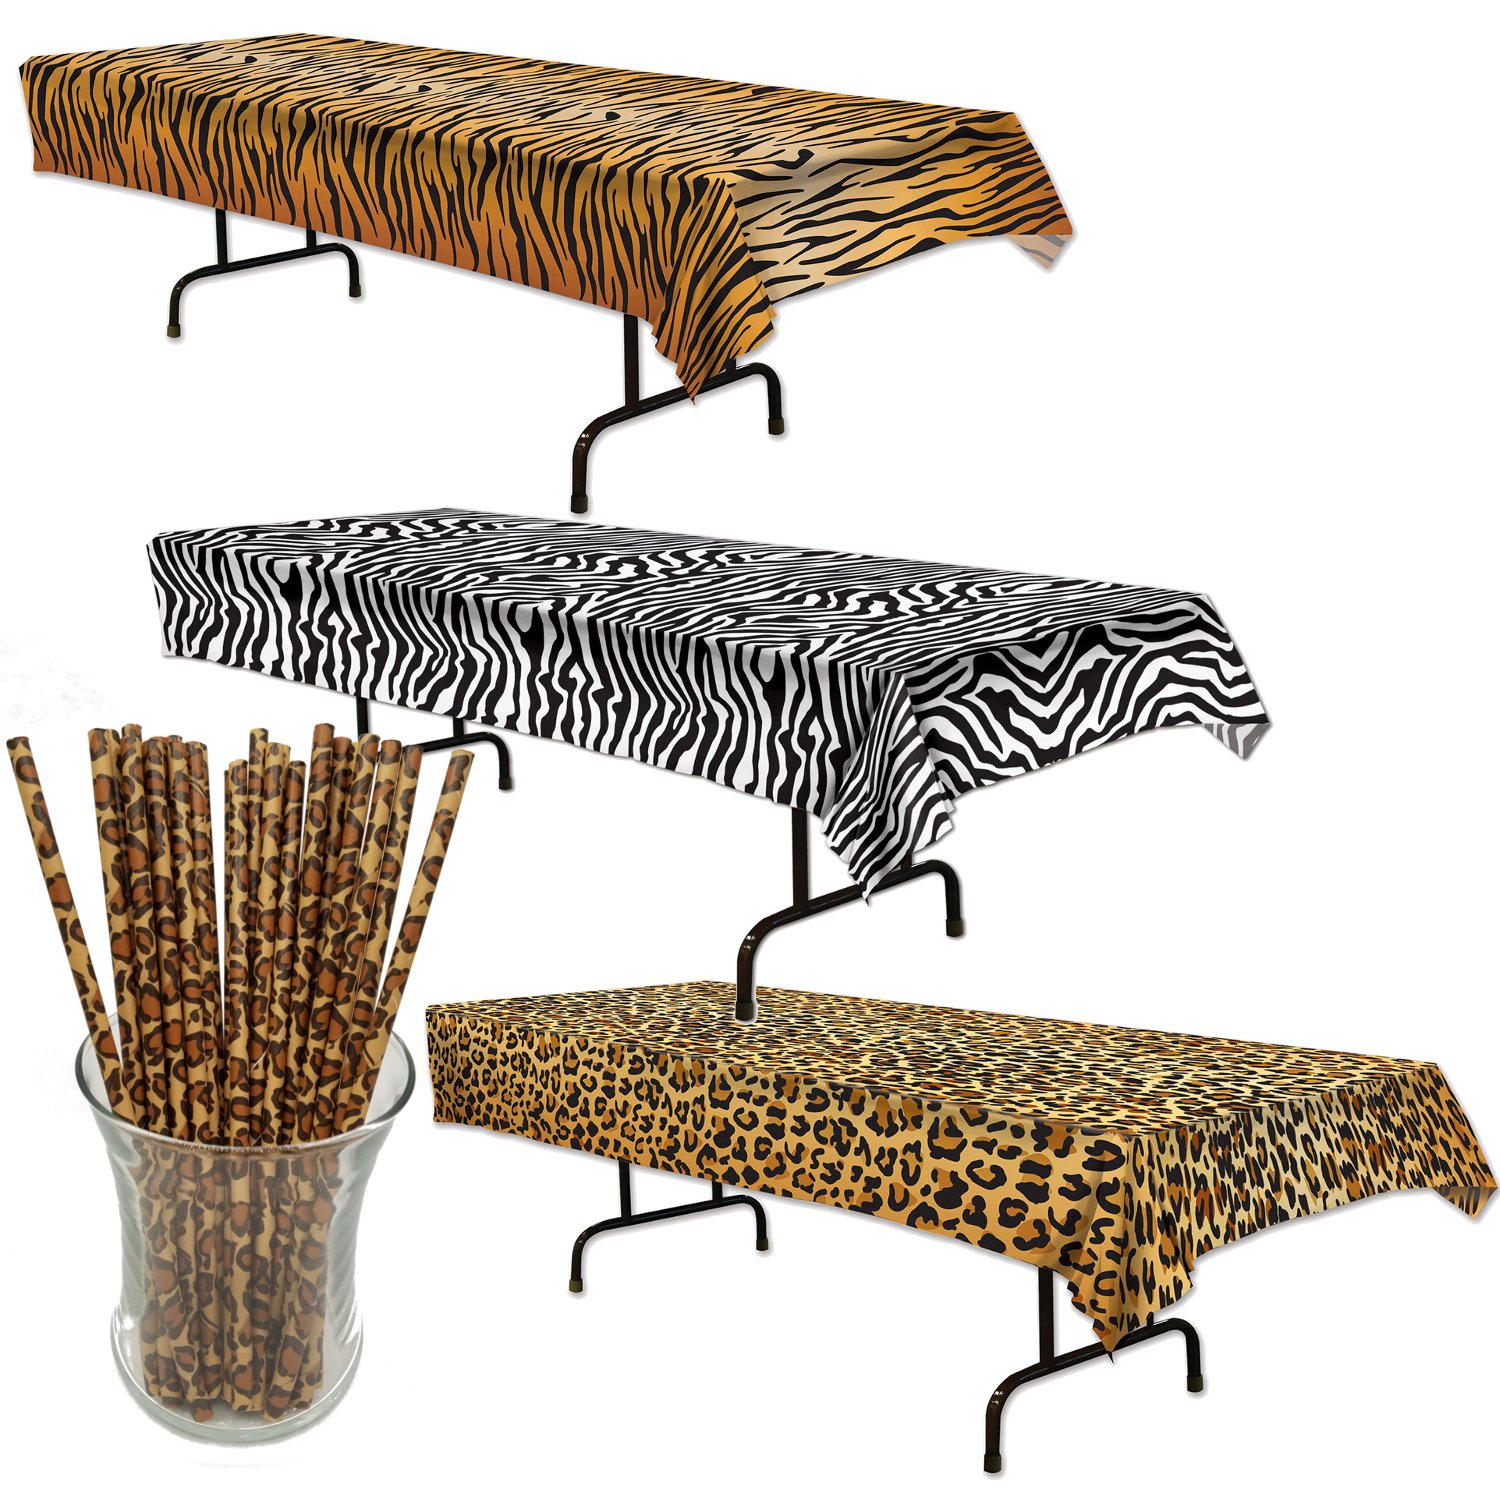 Curated Nirvana Wild Stripes Animal Print Table Cover Bundle with 25 Giraffe Print Straws | Tiger, Zebra & Leopard Print Table Cloths